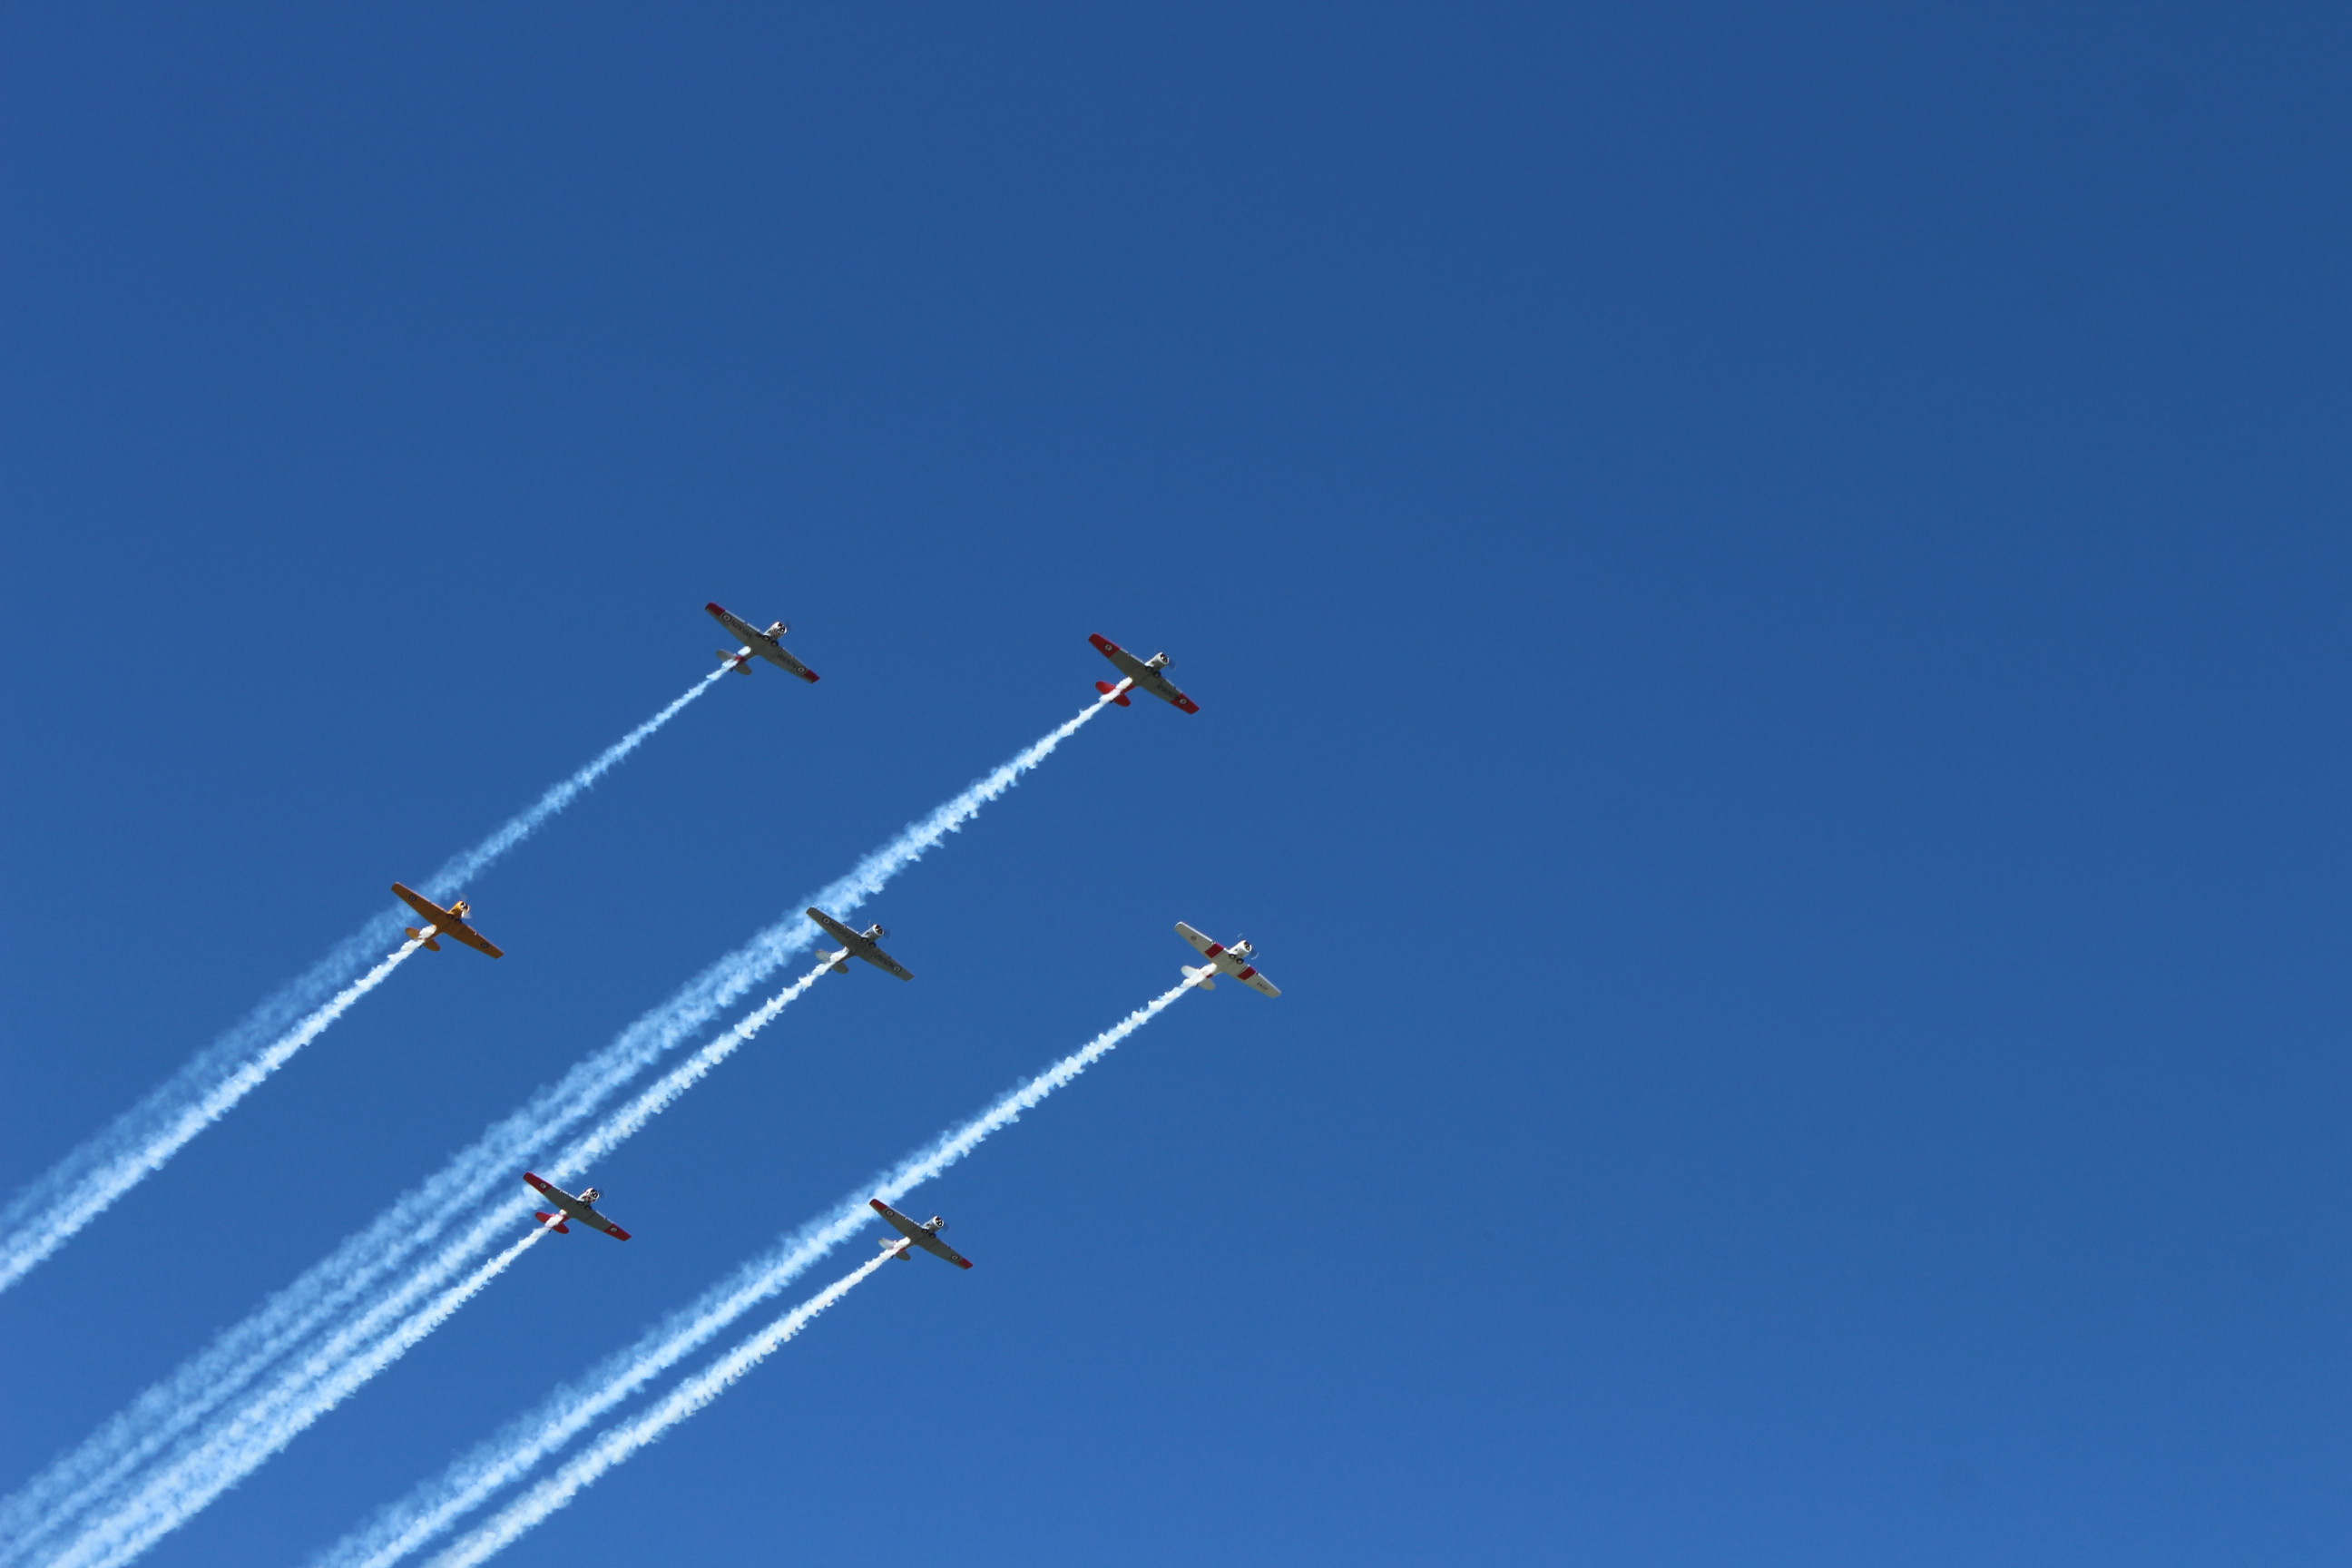 Several waves of vintage military aircraft from the NZ Warbirds Association overflew the unveiling ceremony